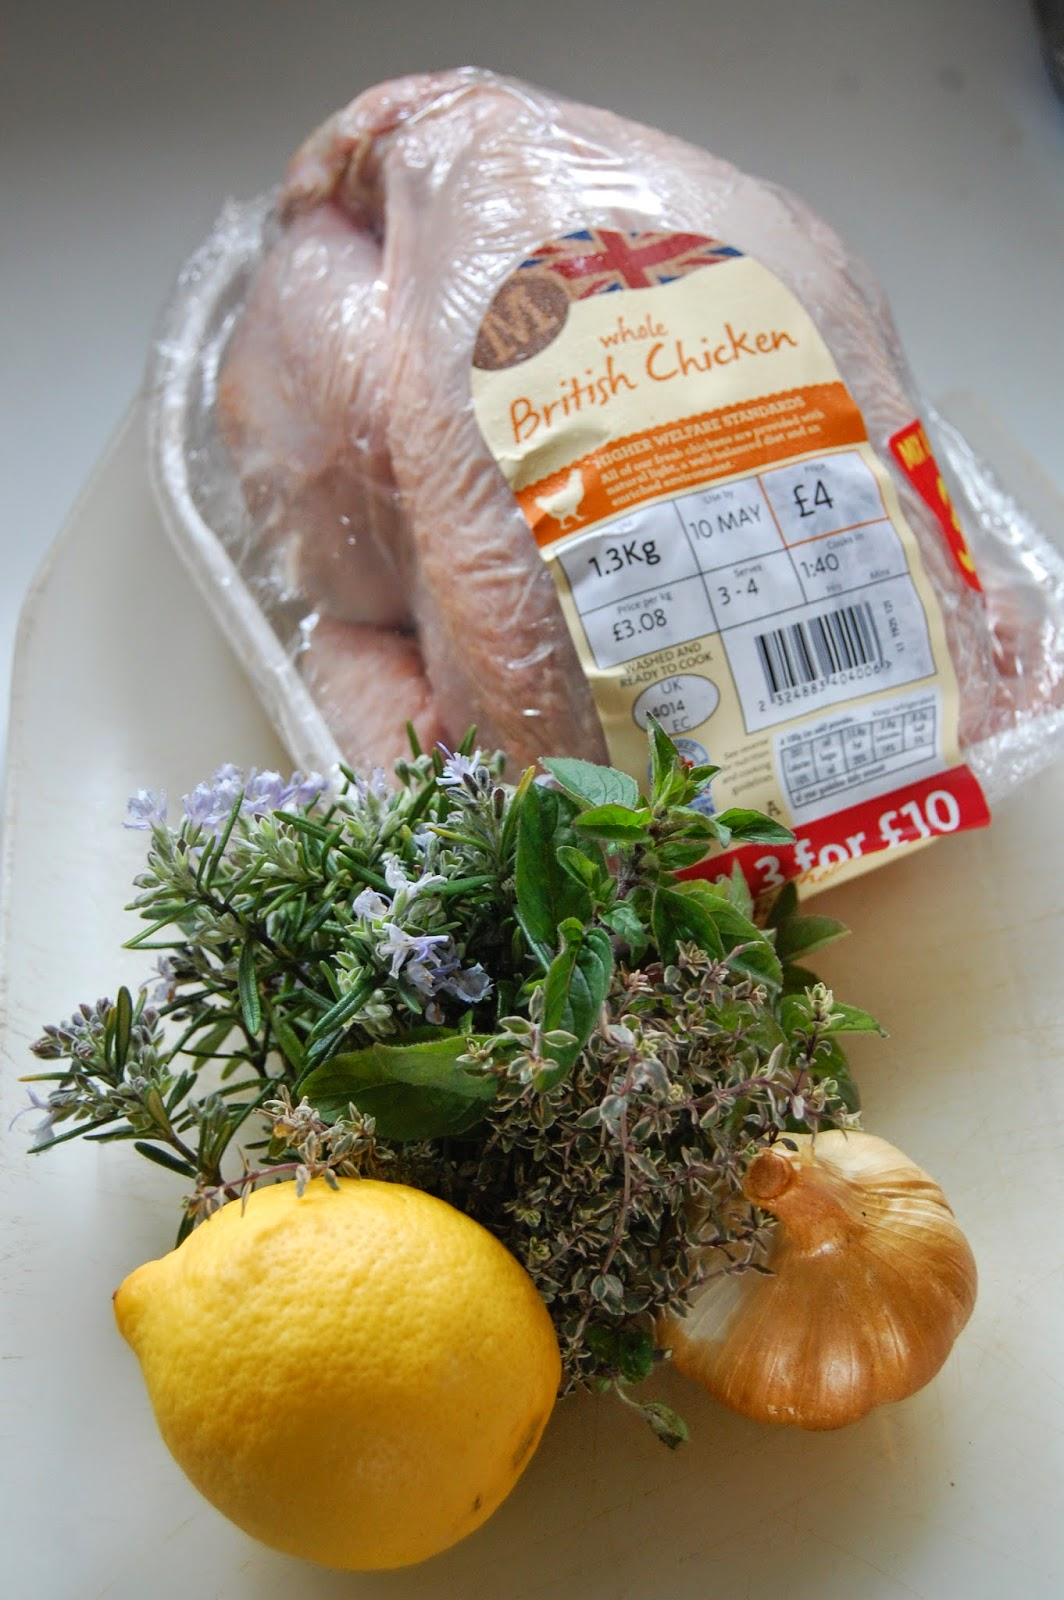 ingredients from Morrisons for our chicken dinner